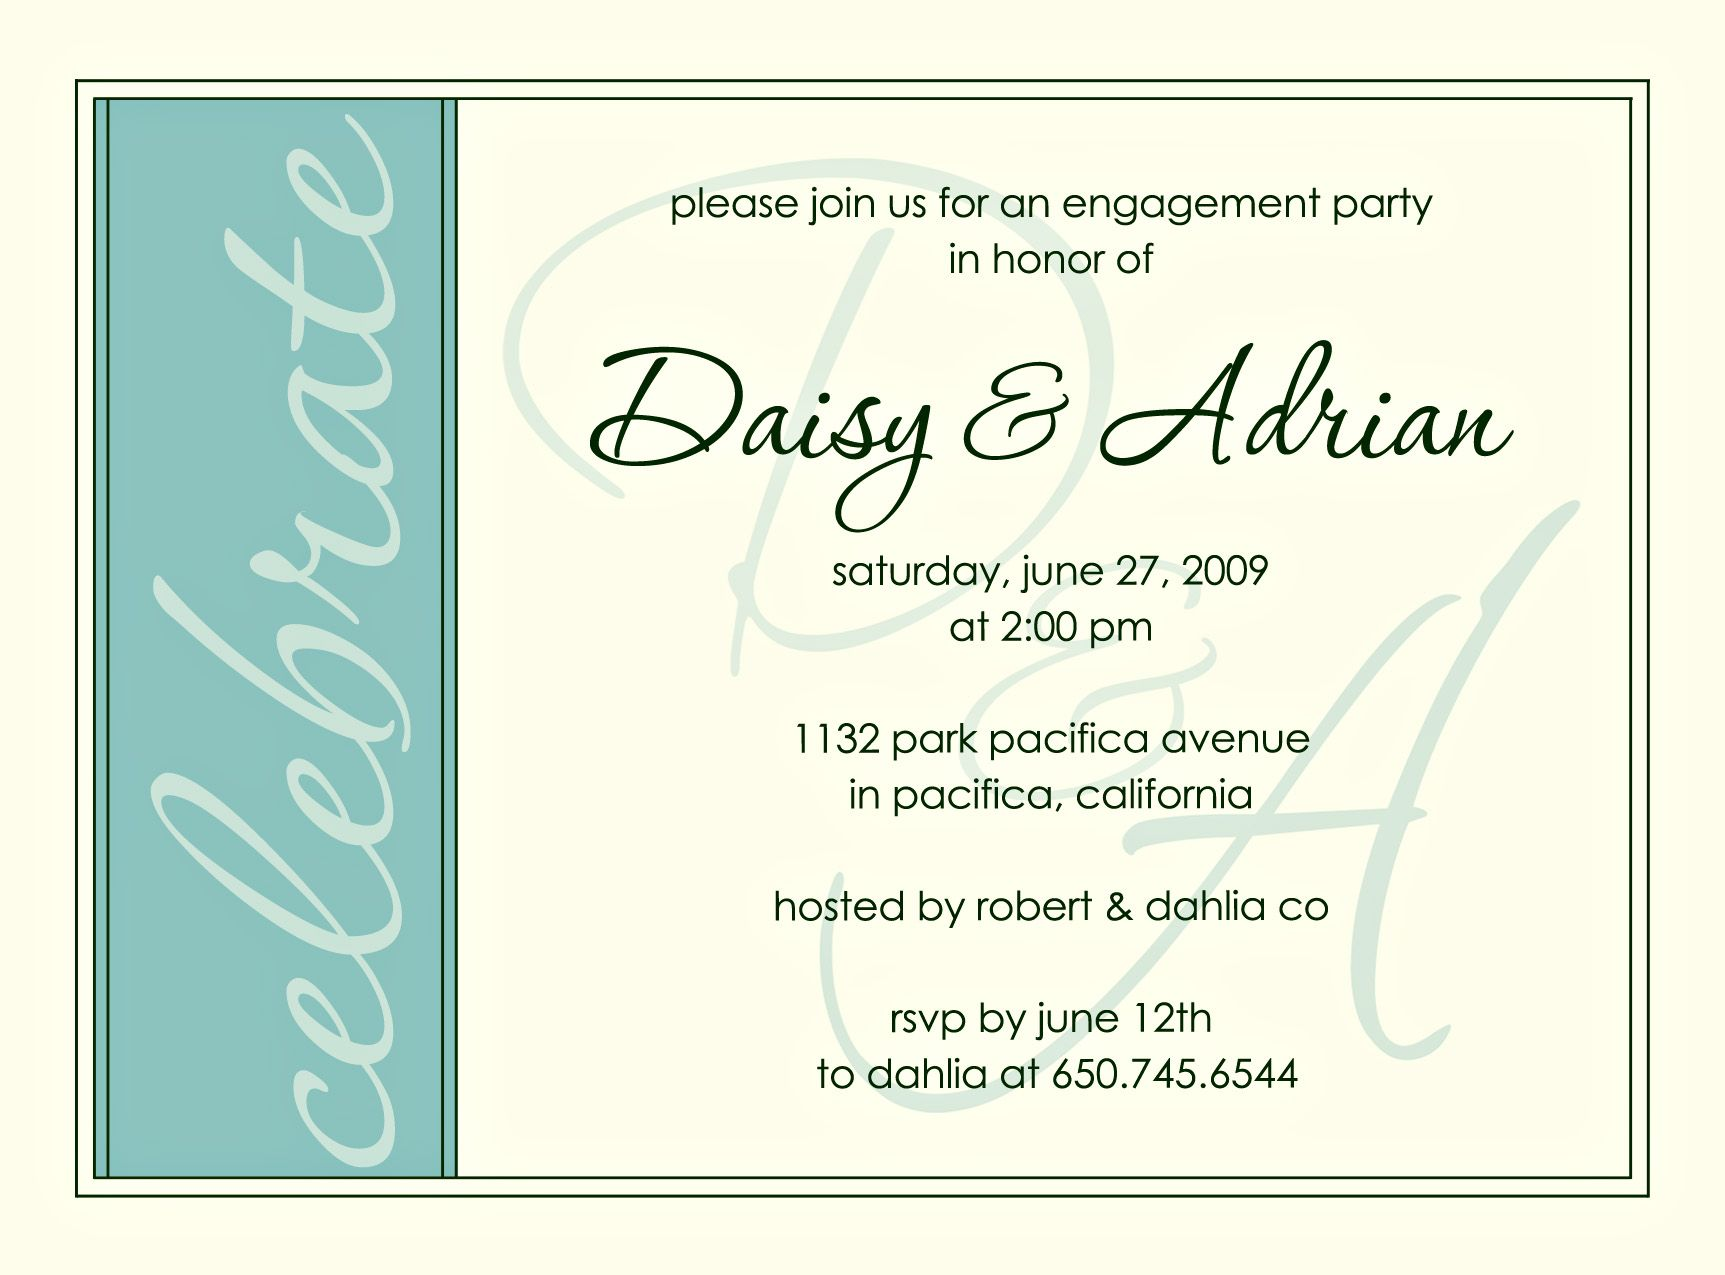 Engagement Party Invite  Engagement Party Invitations Engagement